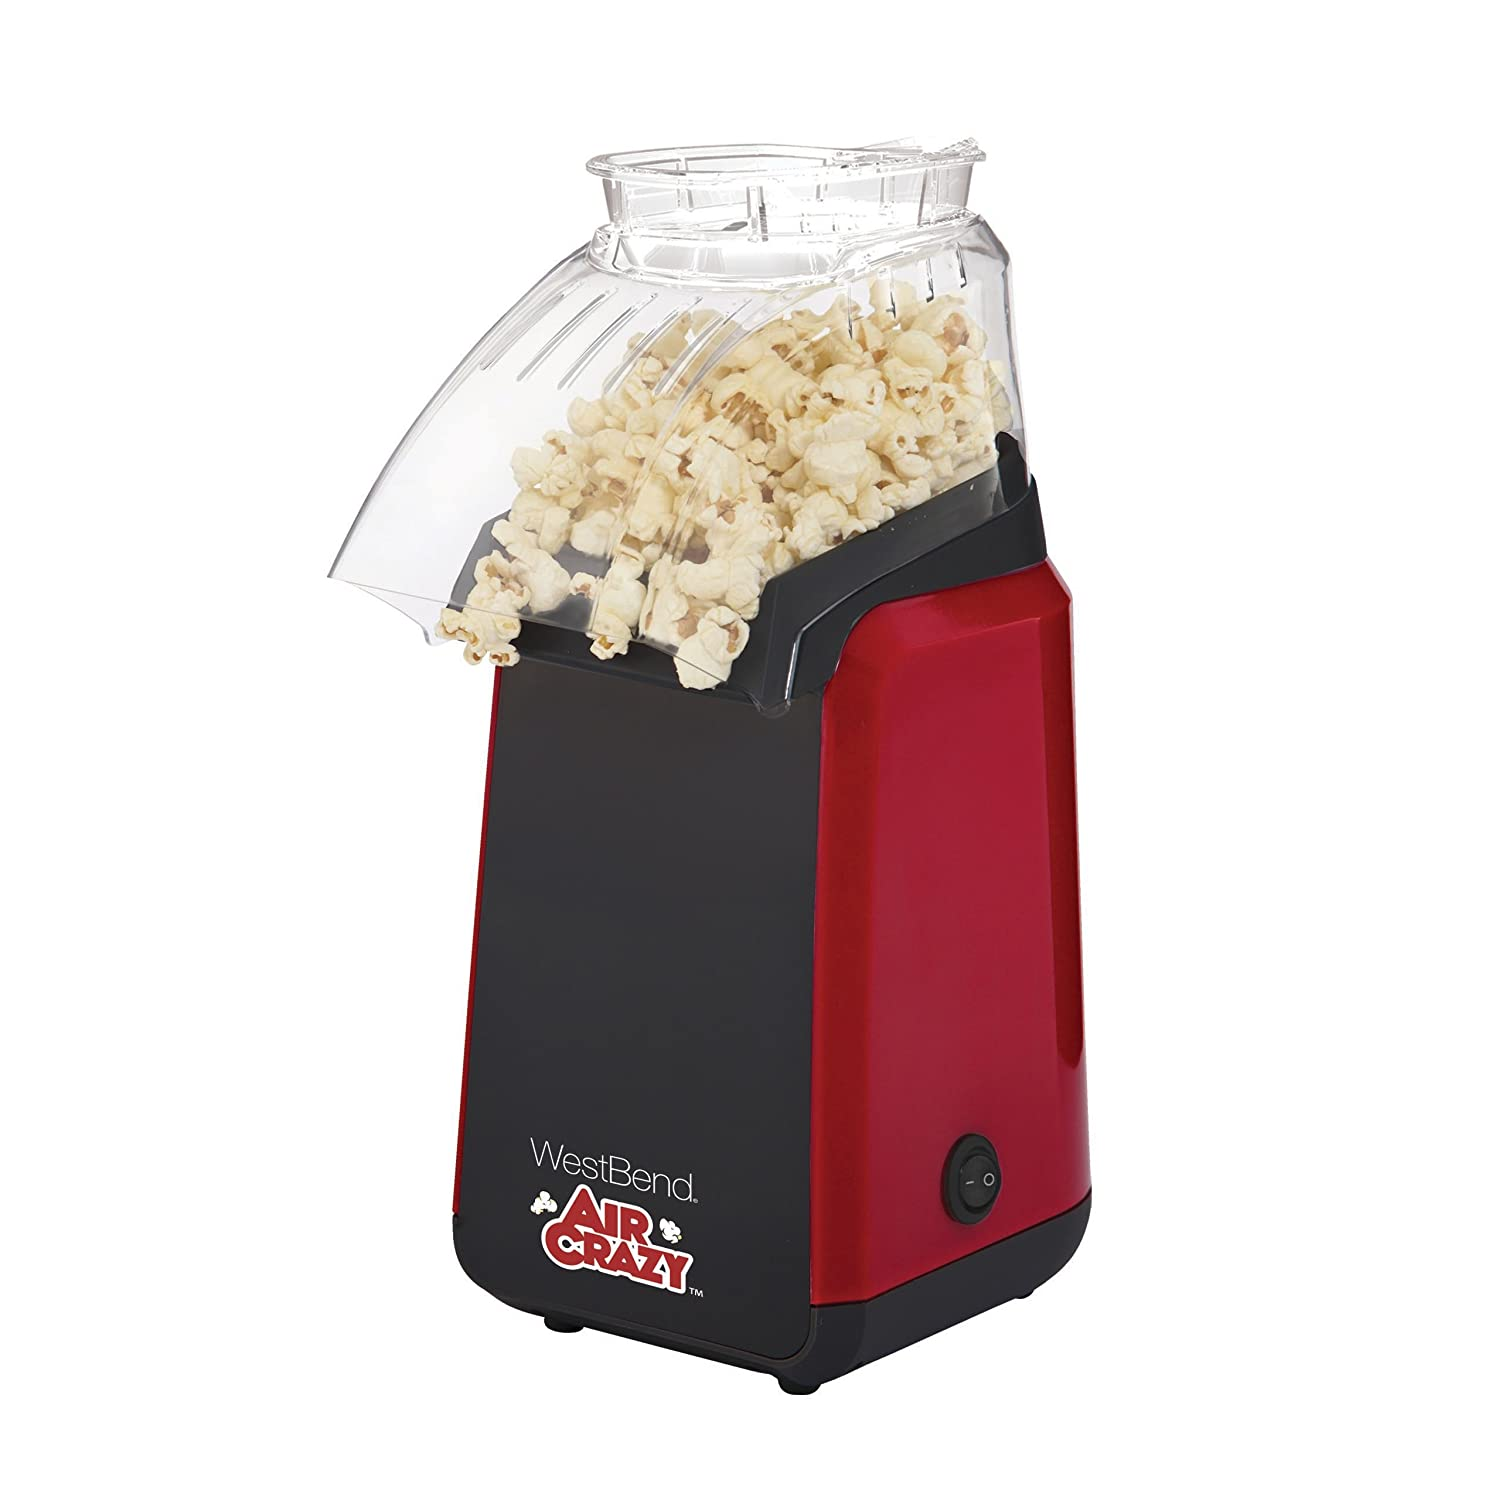 West Bend 82418R Air Crazy Hot Air Popcorn Popper Pops Up To 4 Quarts of Popcorn Using Hot Air, 4-Quart, Red